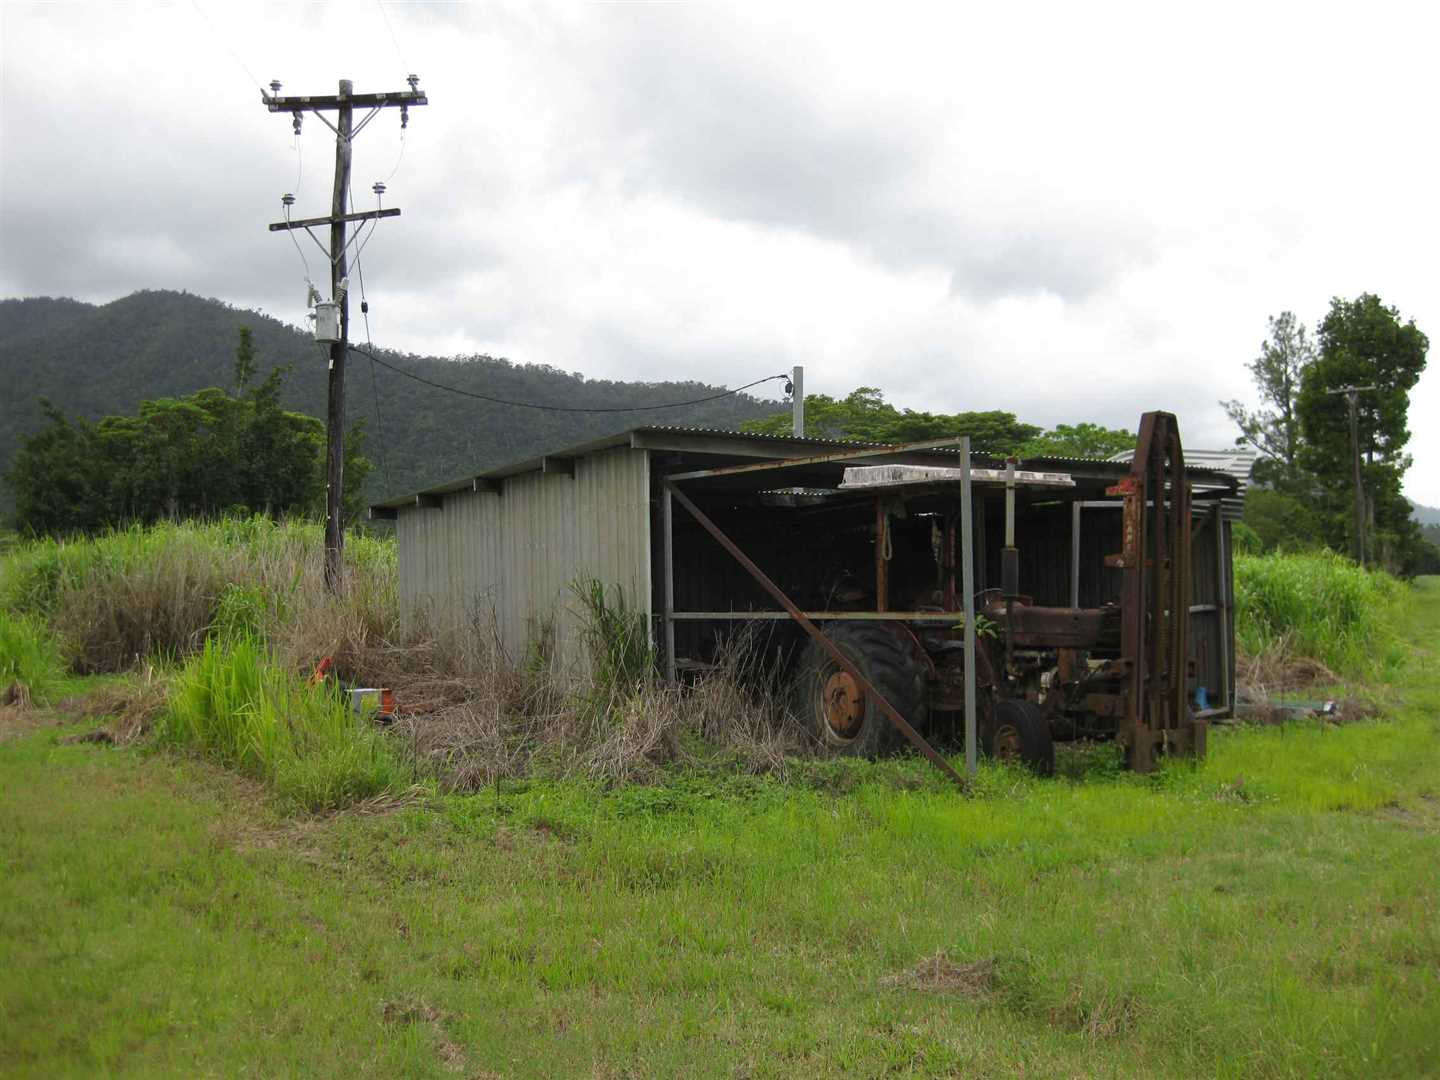 View of part of machinery shed (needs repairs)